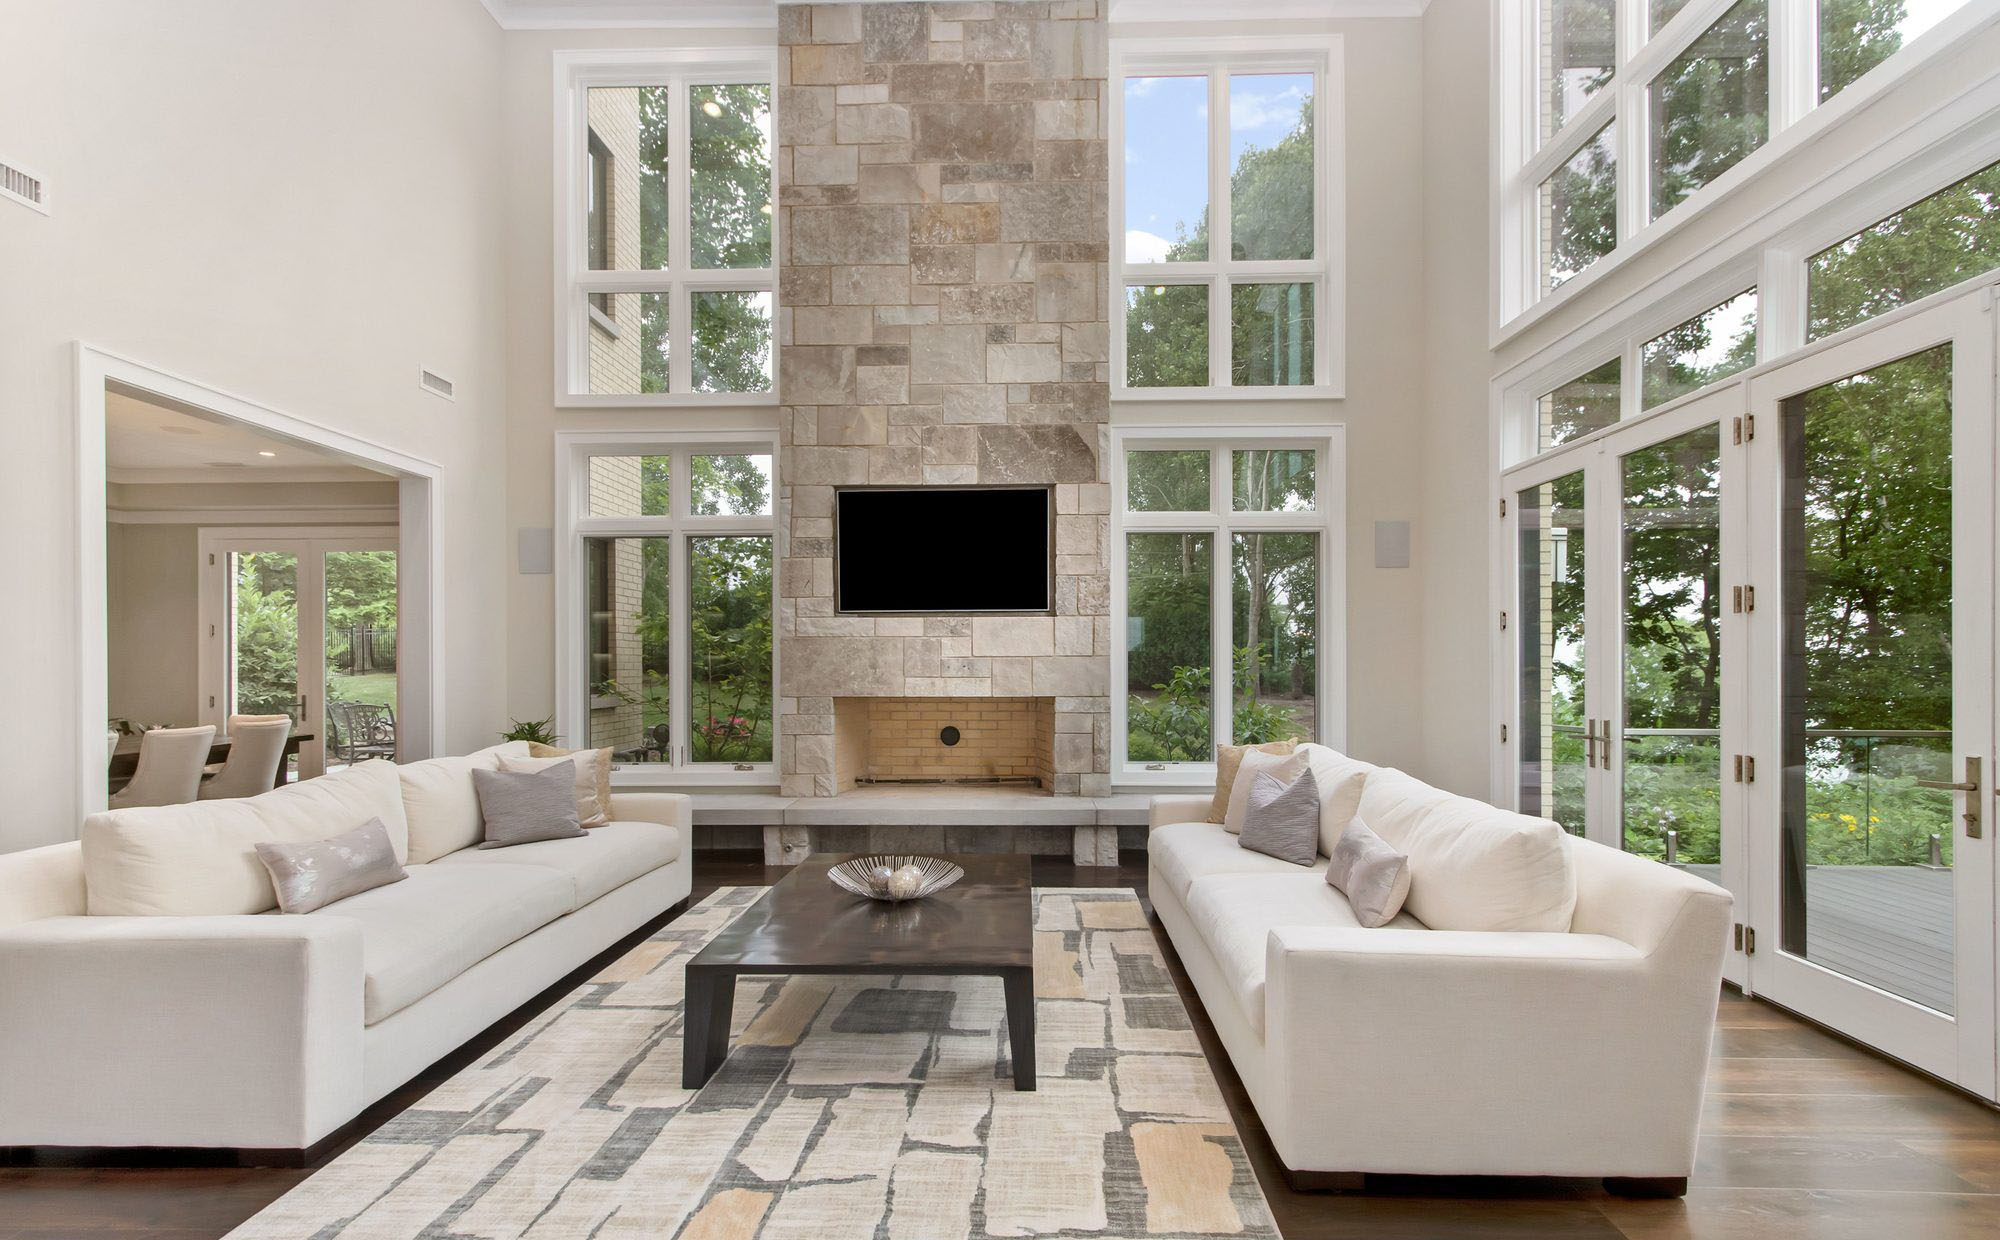 beautiful modern living room with a vaulted ceiling and walls of glass. Wood burning fireplace with stone surround.